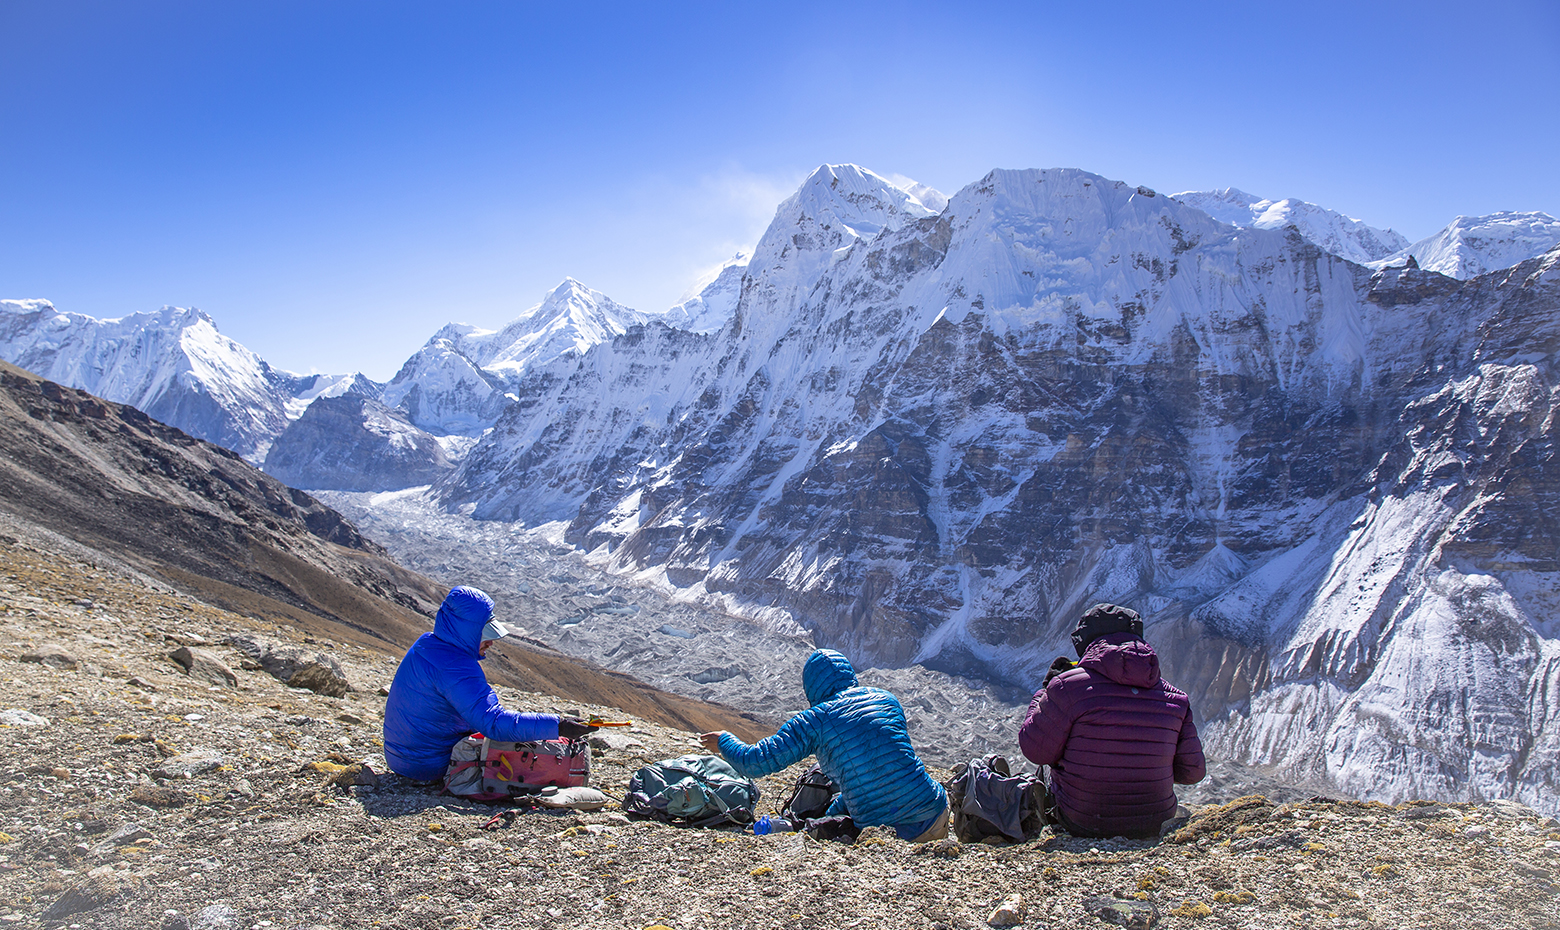 A quick snack above the Kanchenjunga Glacier in Nepal.